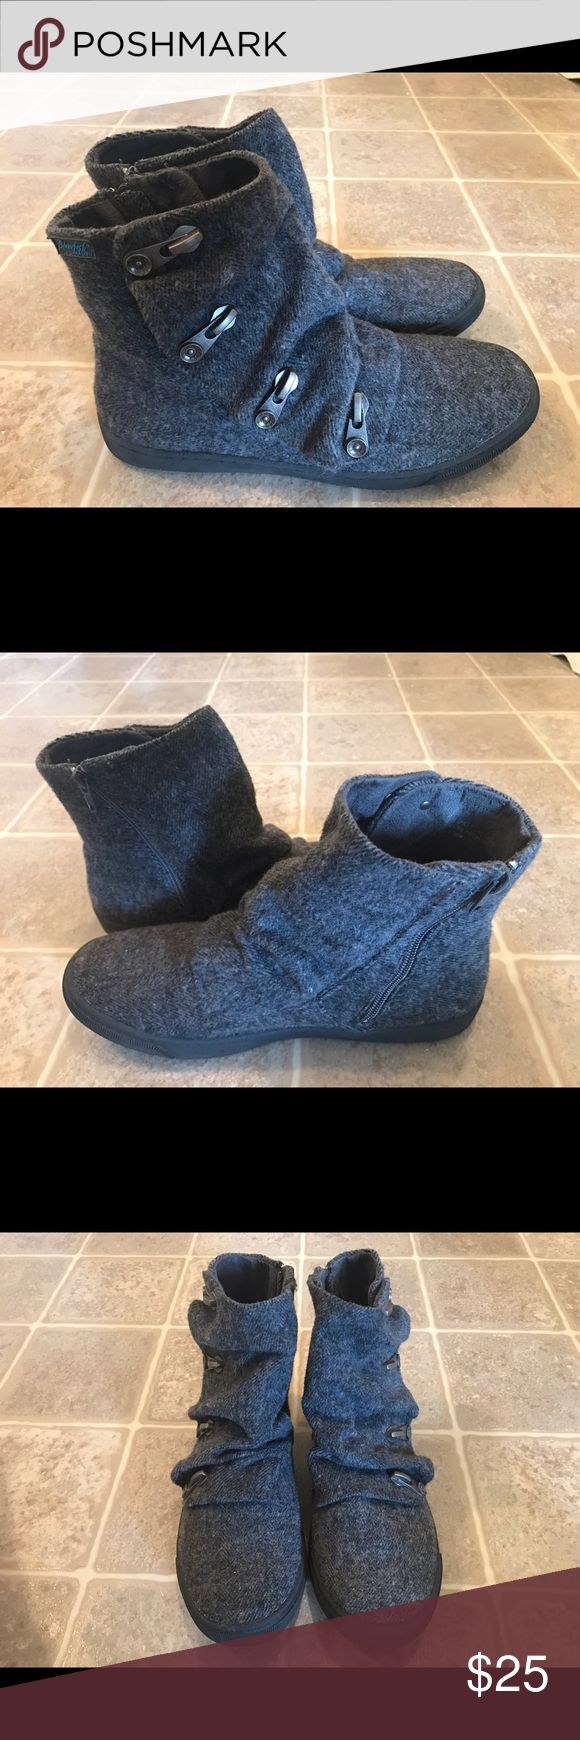 Blowfish Malibu Grey Flannel Zip Ankle Boots Like new, worn once so they're spotless. Grey soft flannel with buckles, zip up ankle boots. Super comfortable! Blowfish Shoes Ankle Boots & Booties